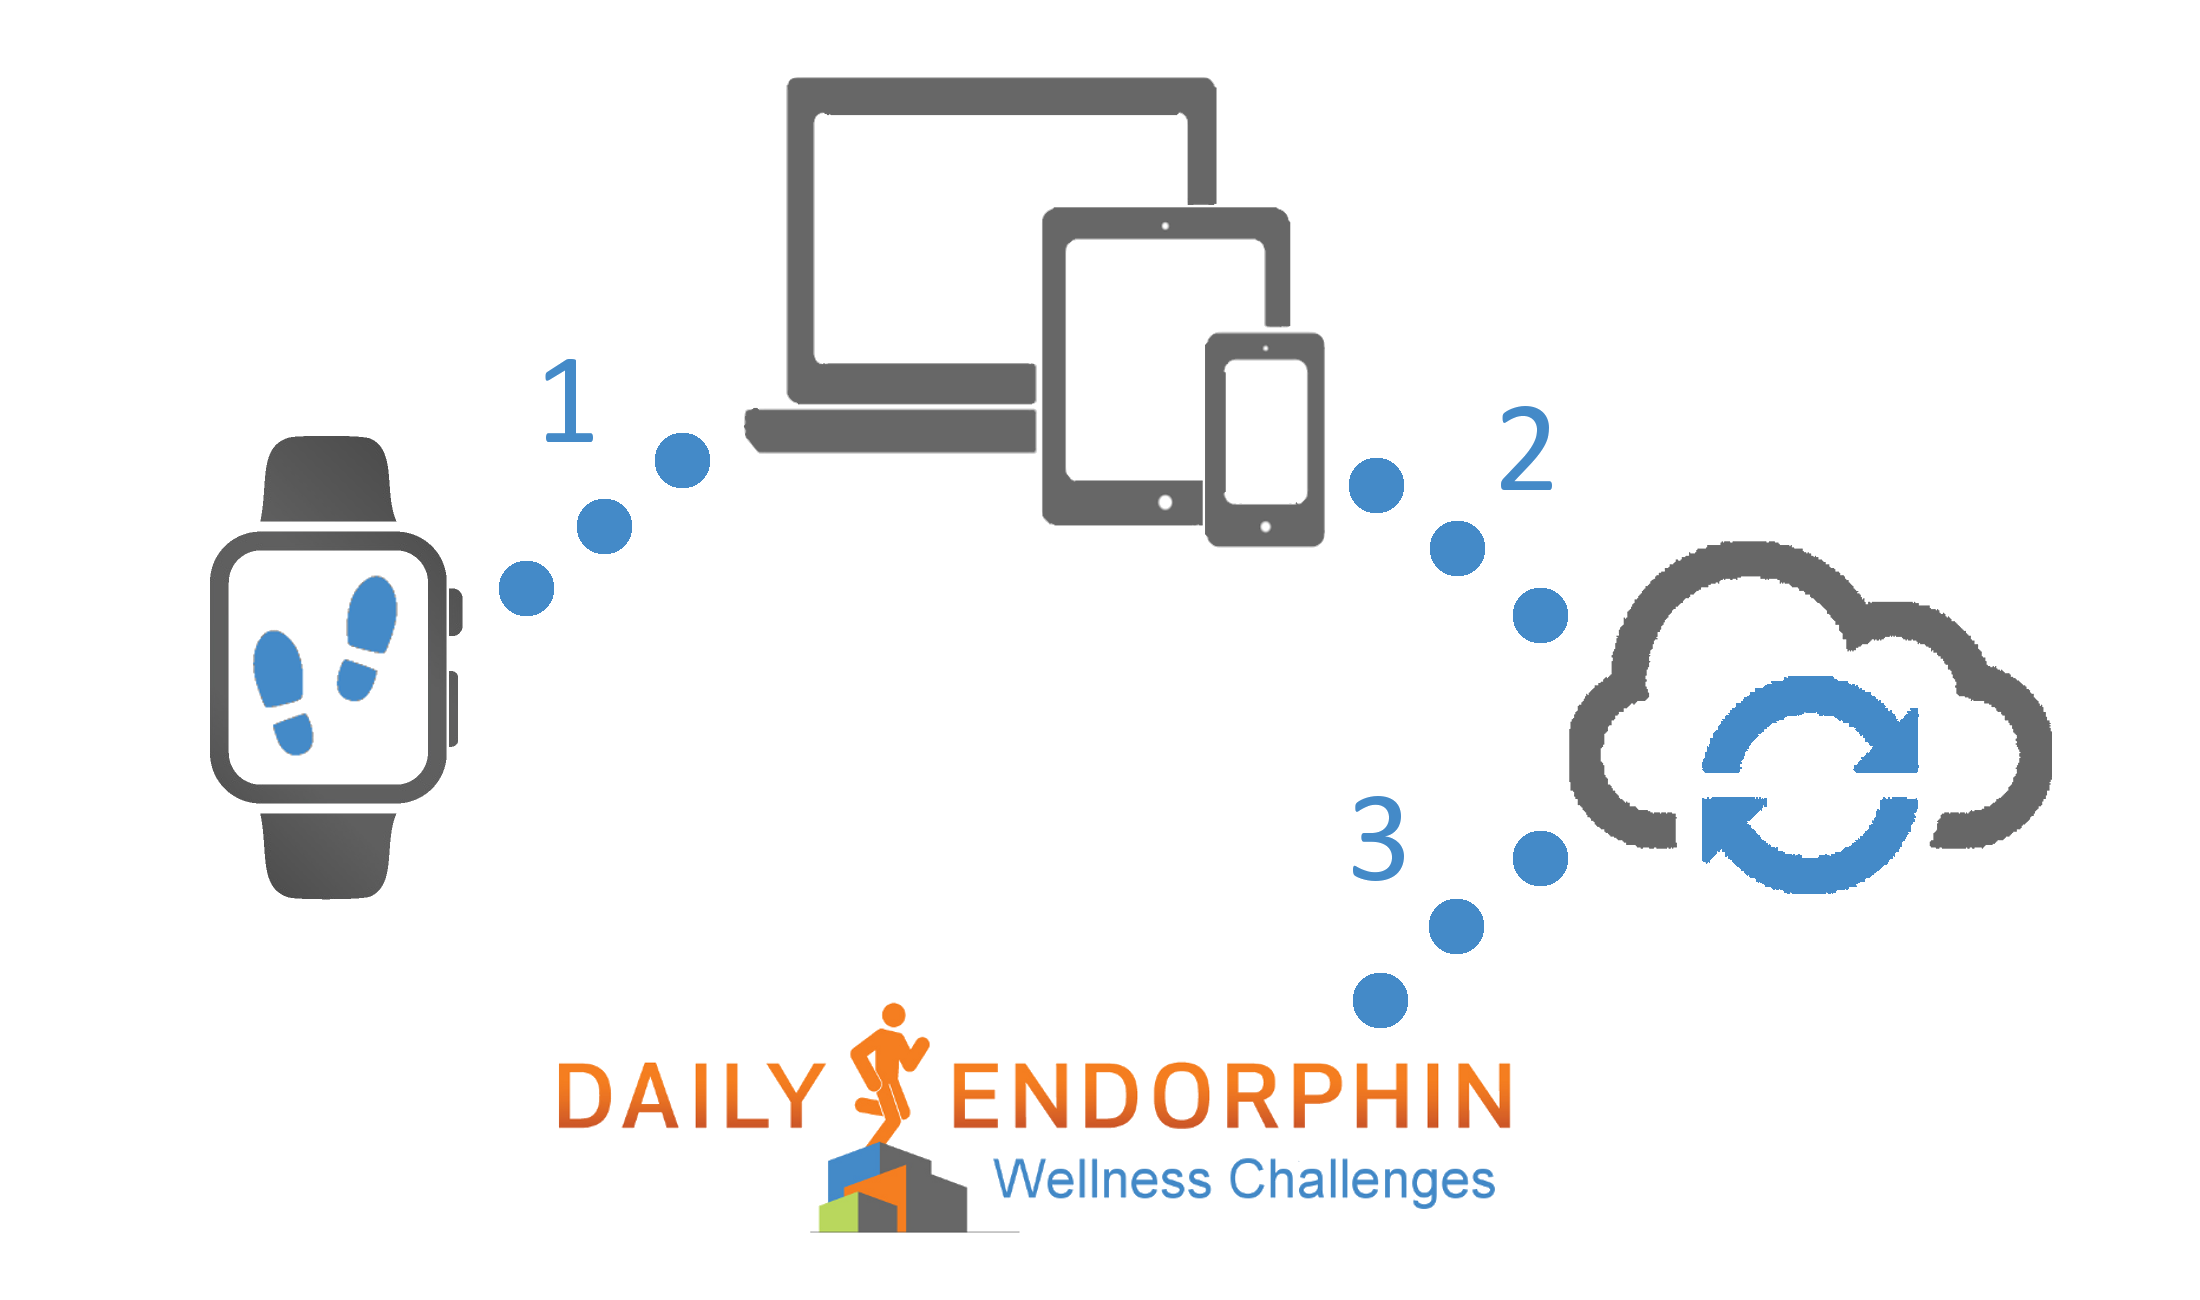 DailyEndorphin Device Integration